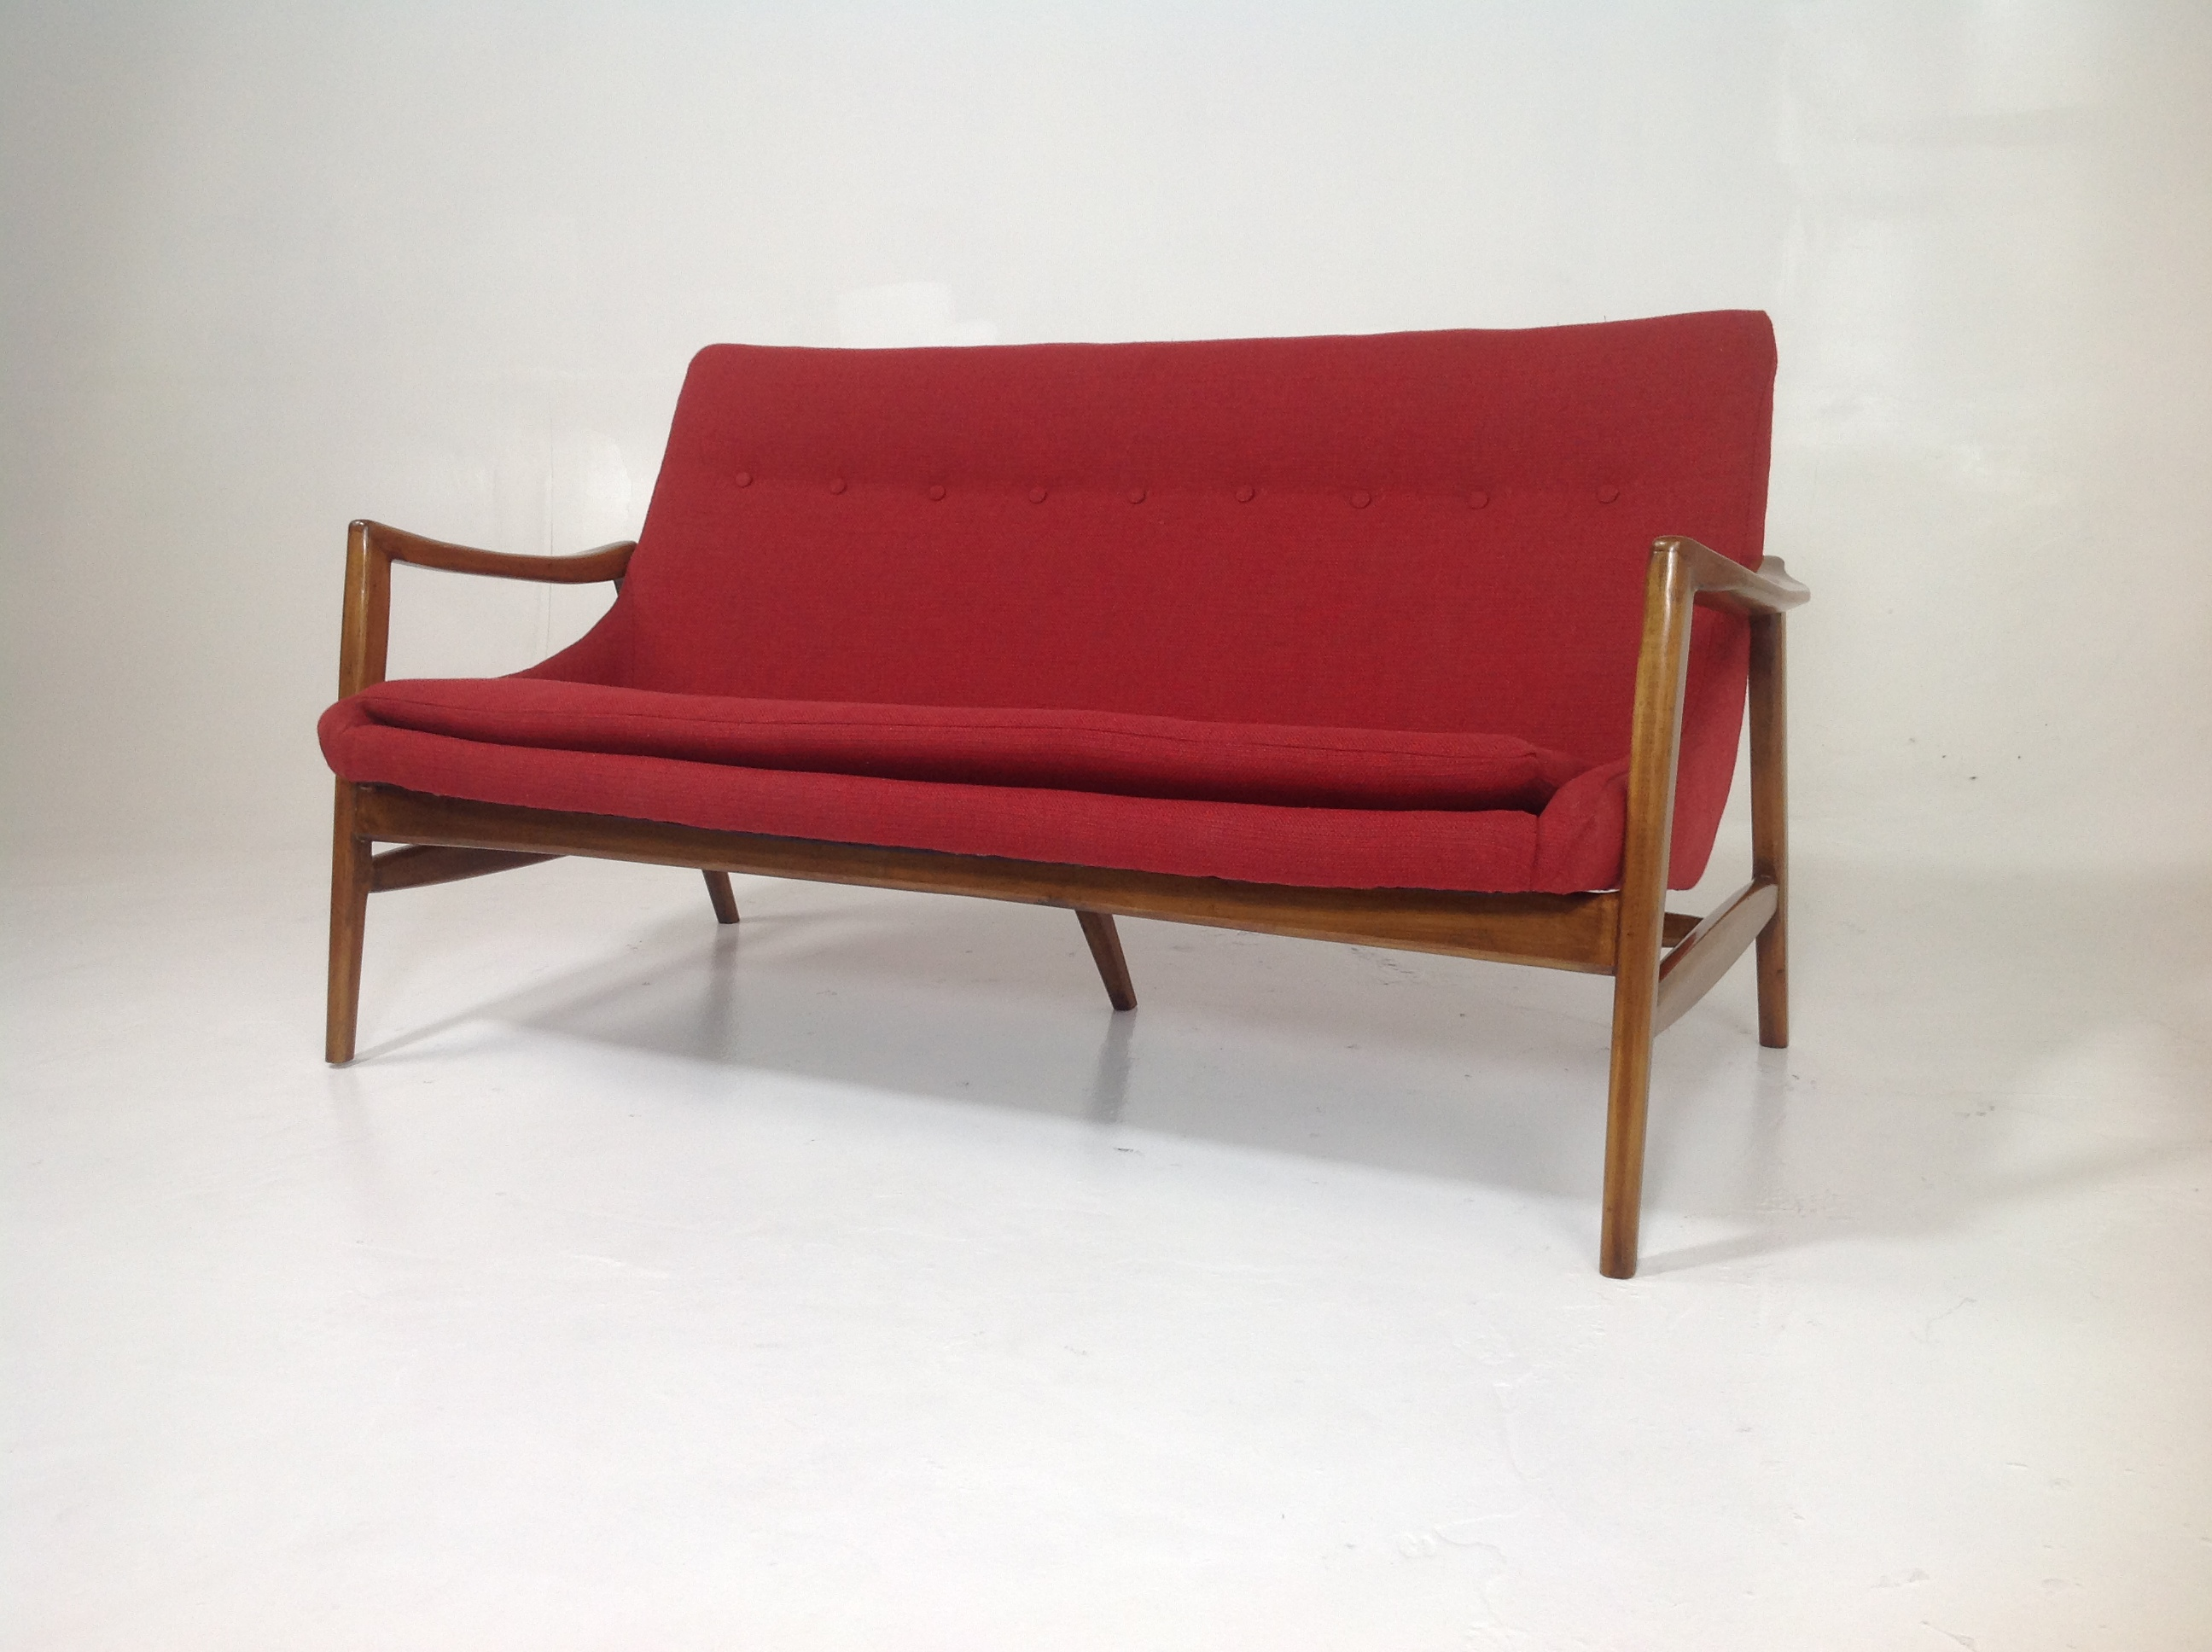 Custom Made Mid Century Style Sofa. The Sofa Was Made In The Style